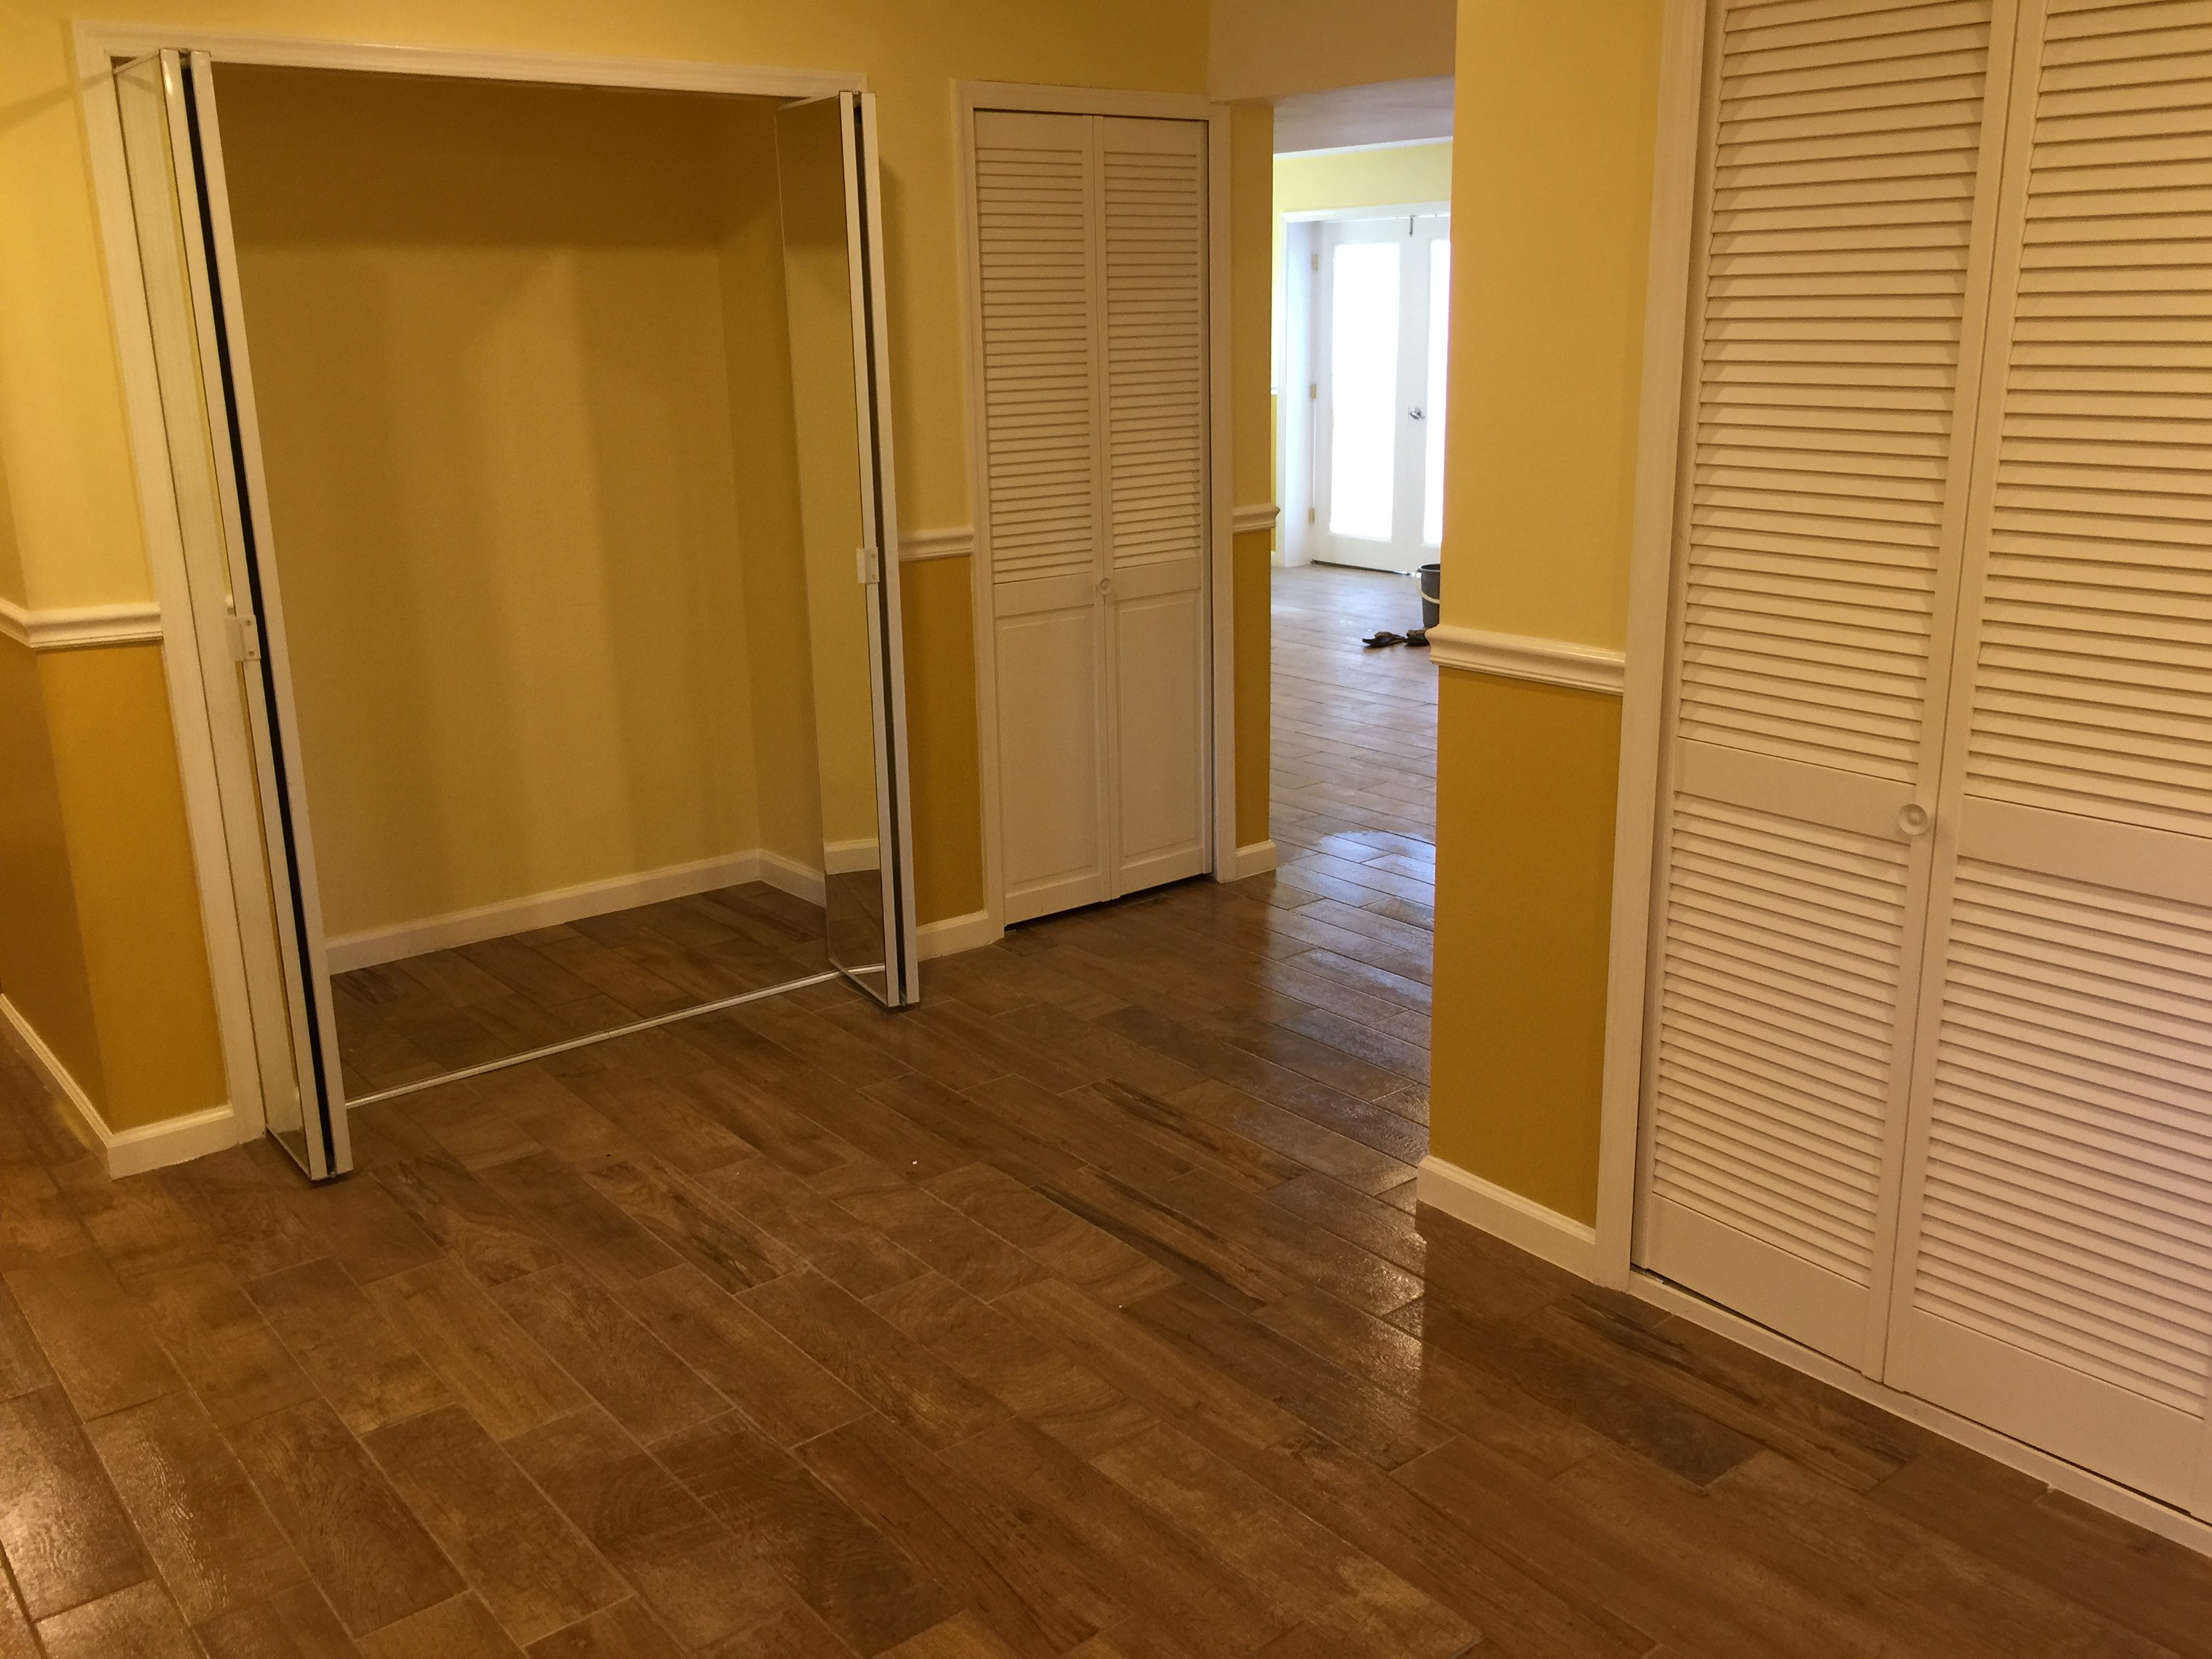 Find basement Apartment for Rent in Chantilly, VA | Sulekha